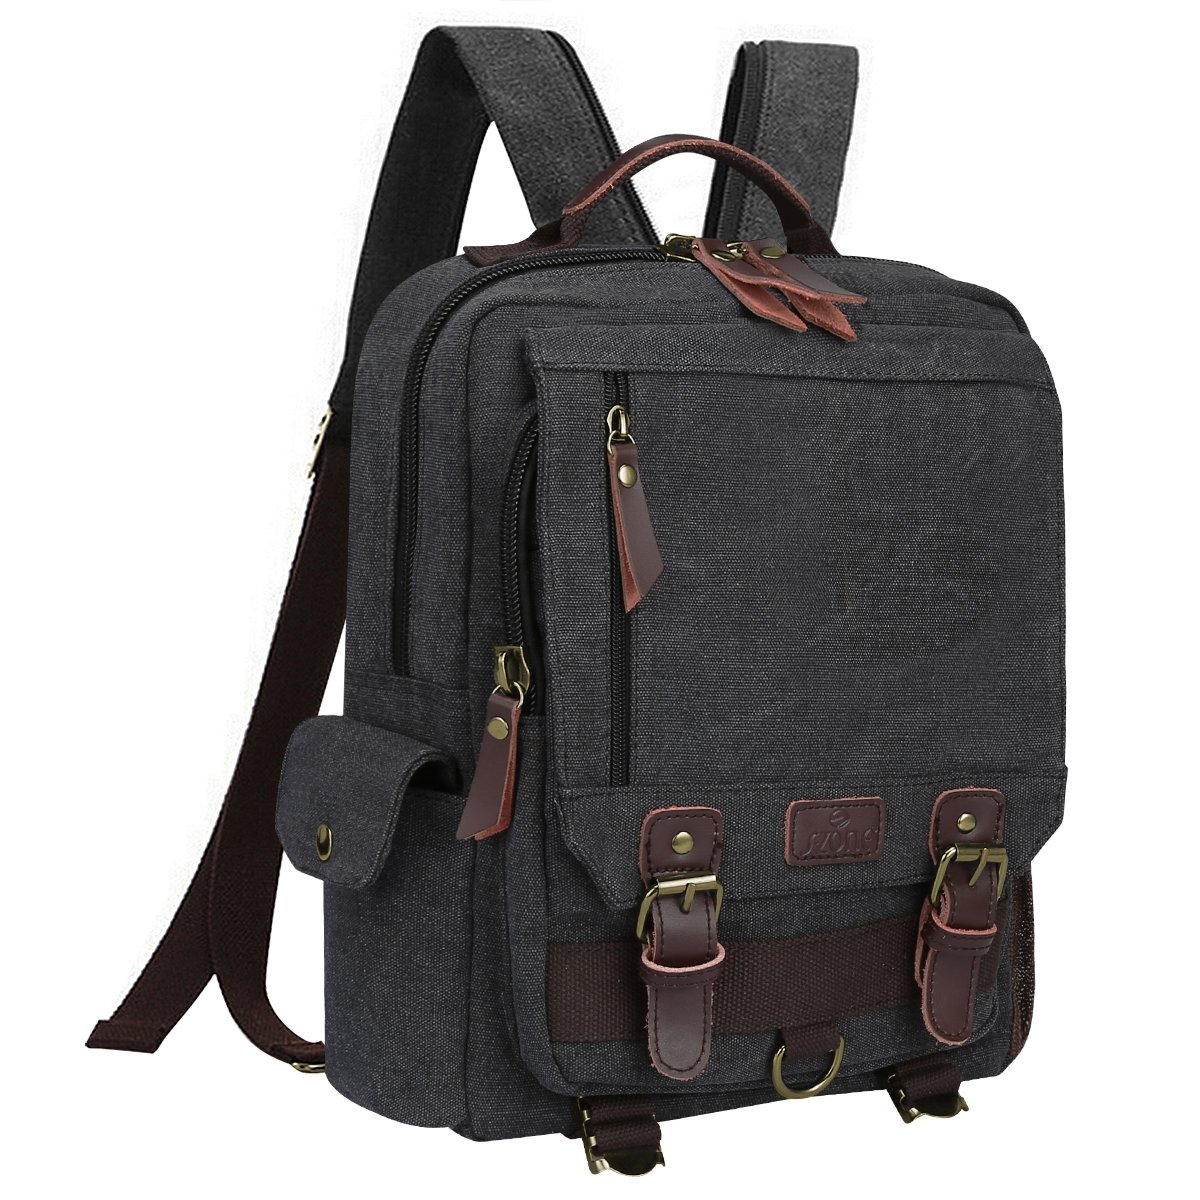 S ZONE Sling Canvas Cross Body 13 inch Laptop Messenger Bag Shoulder Backpack